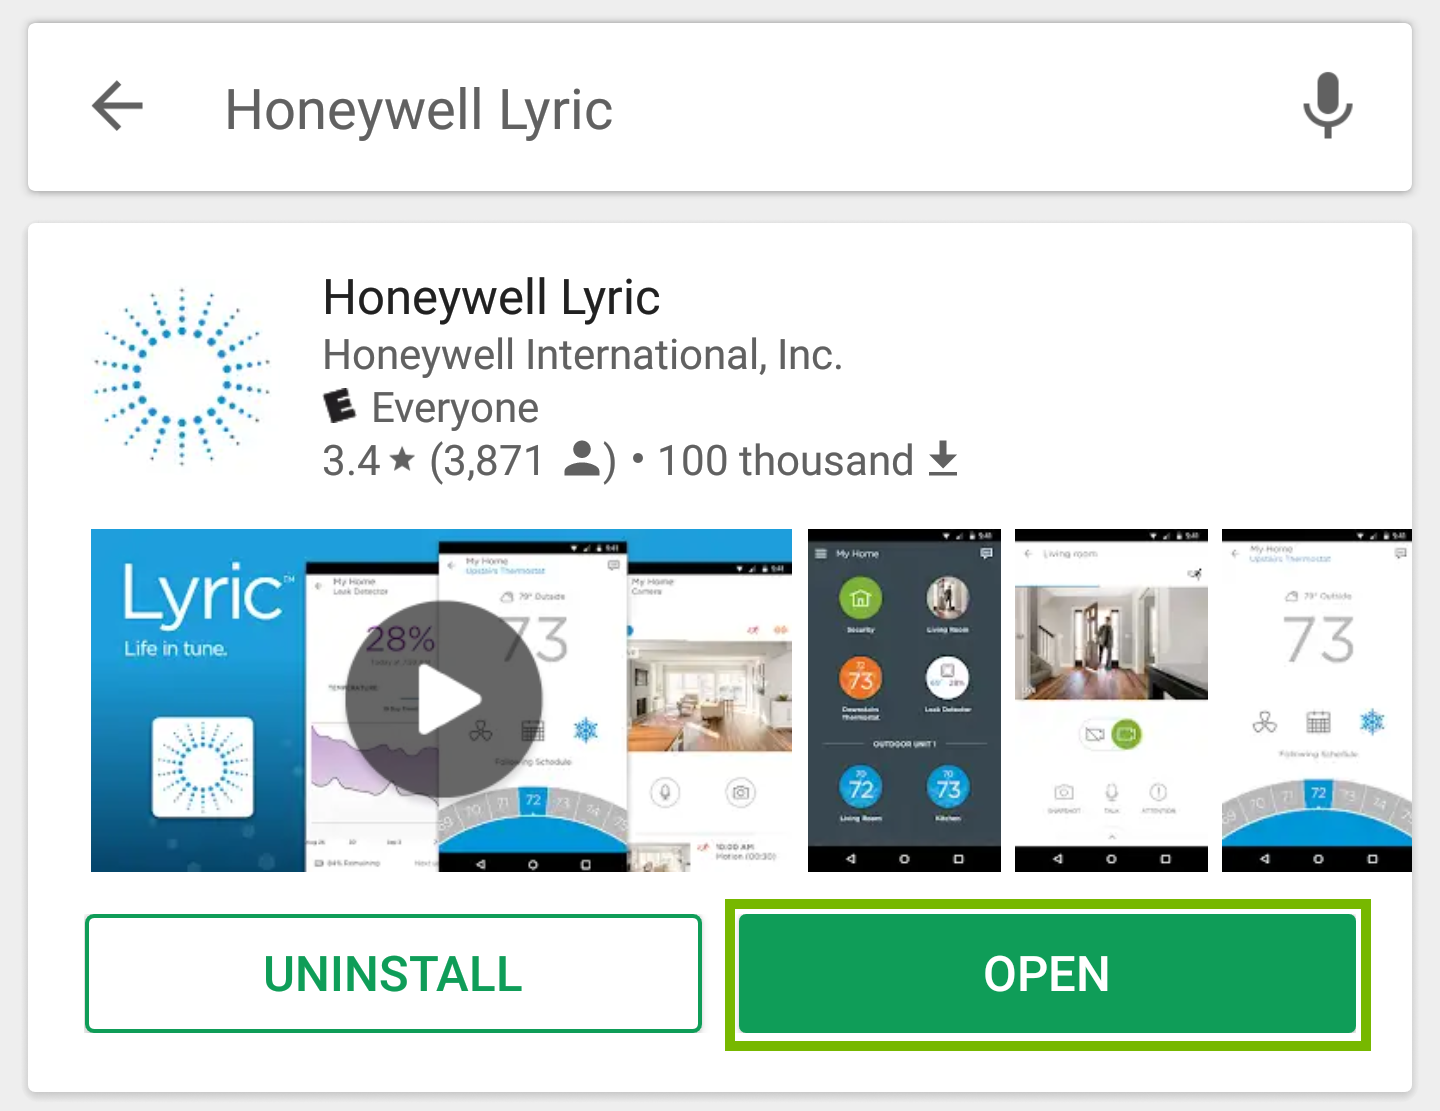 Picture indicating to press the open button for the Honeywell Lyric app